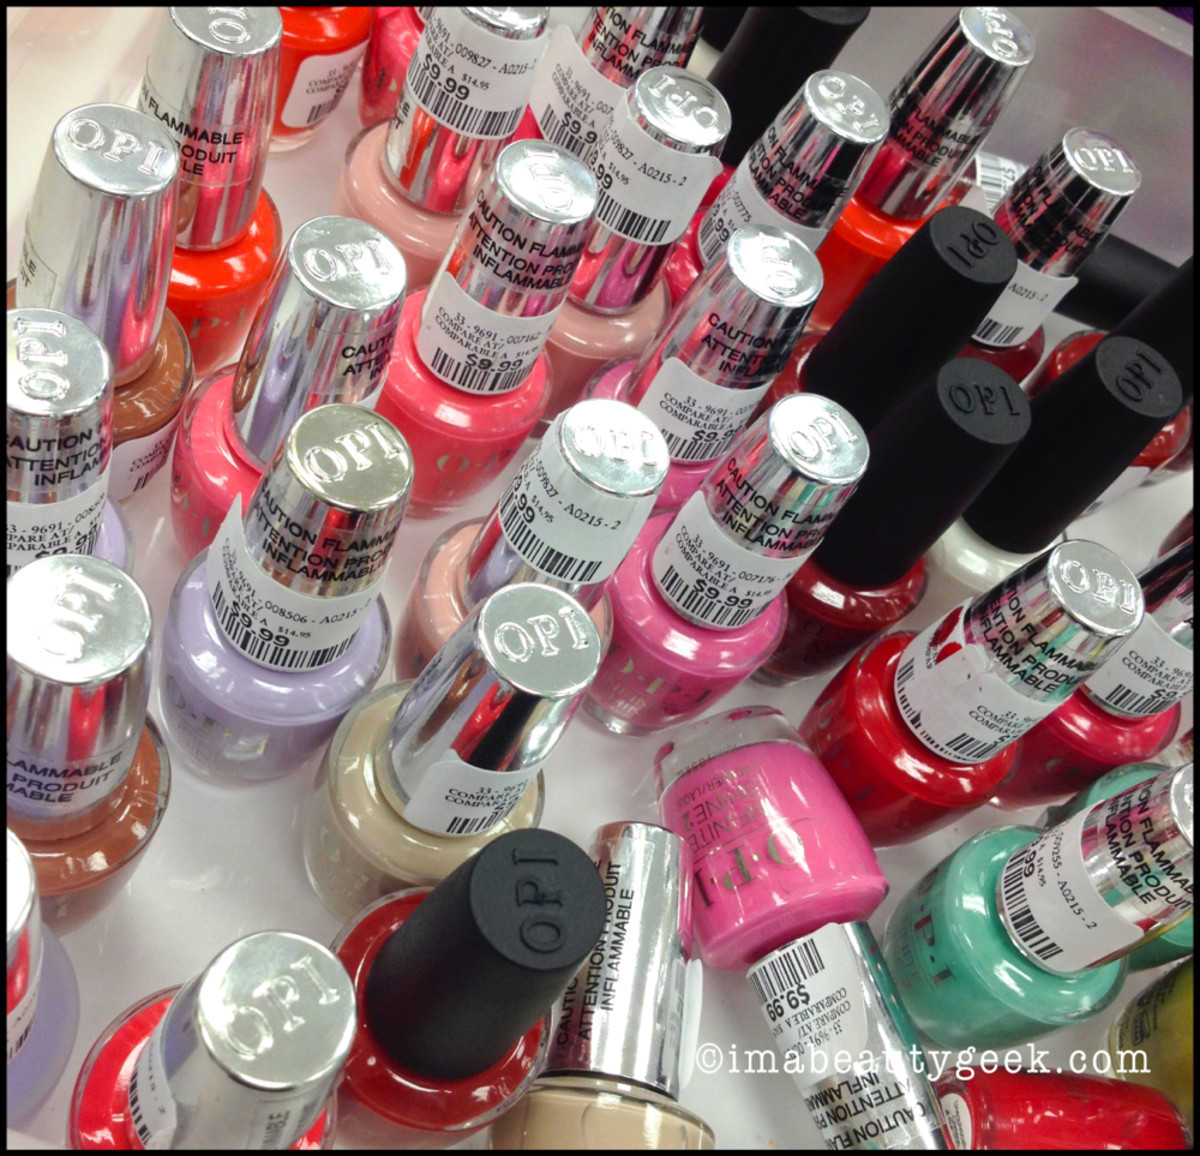 OPI Infinite Shine at Winners Feb 4